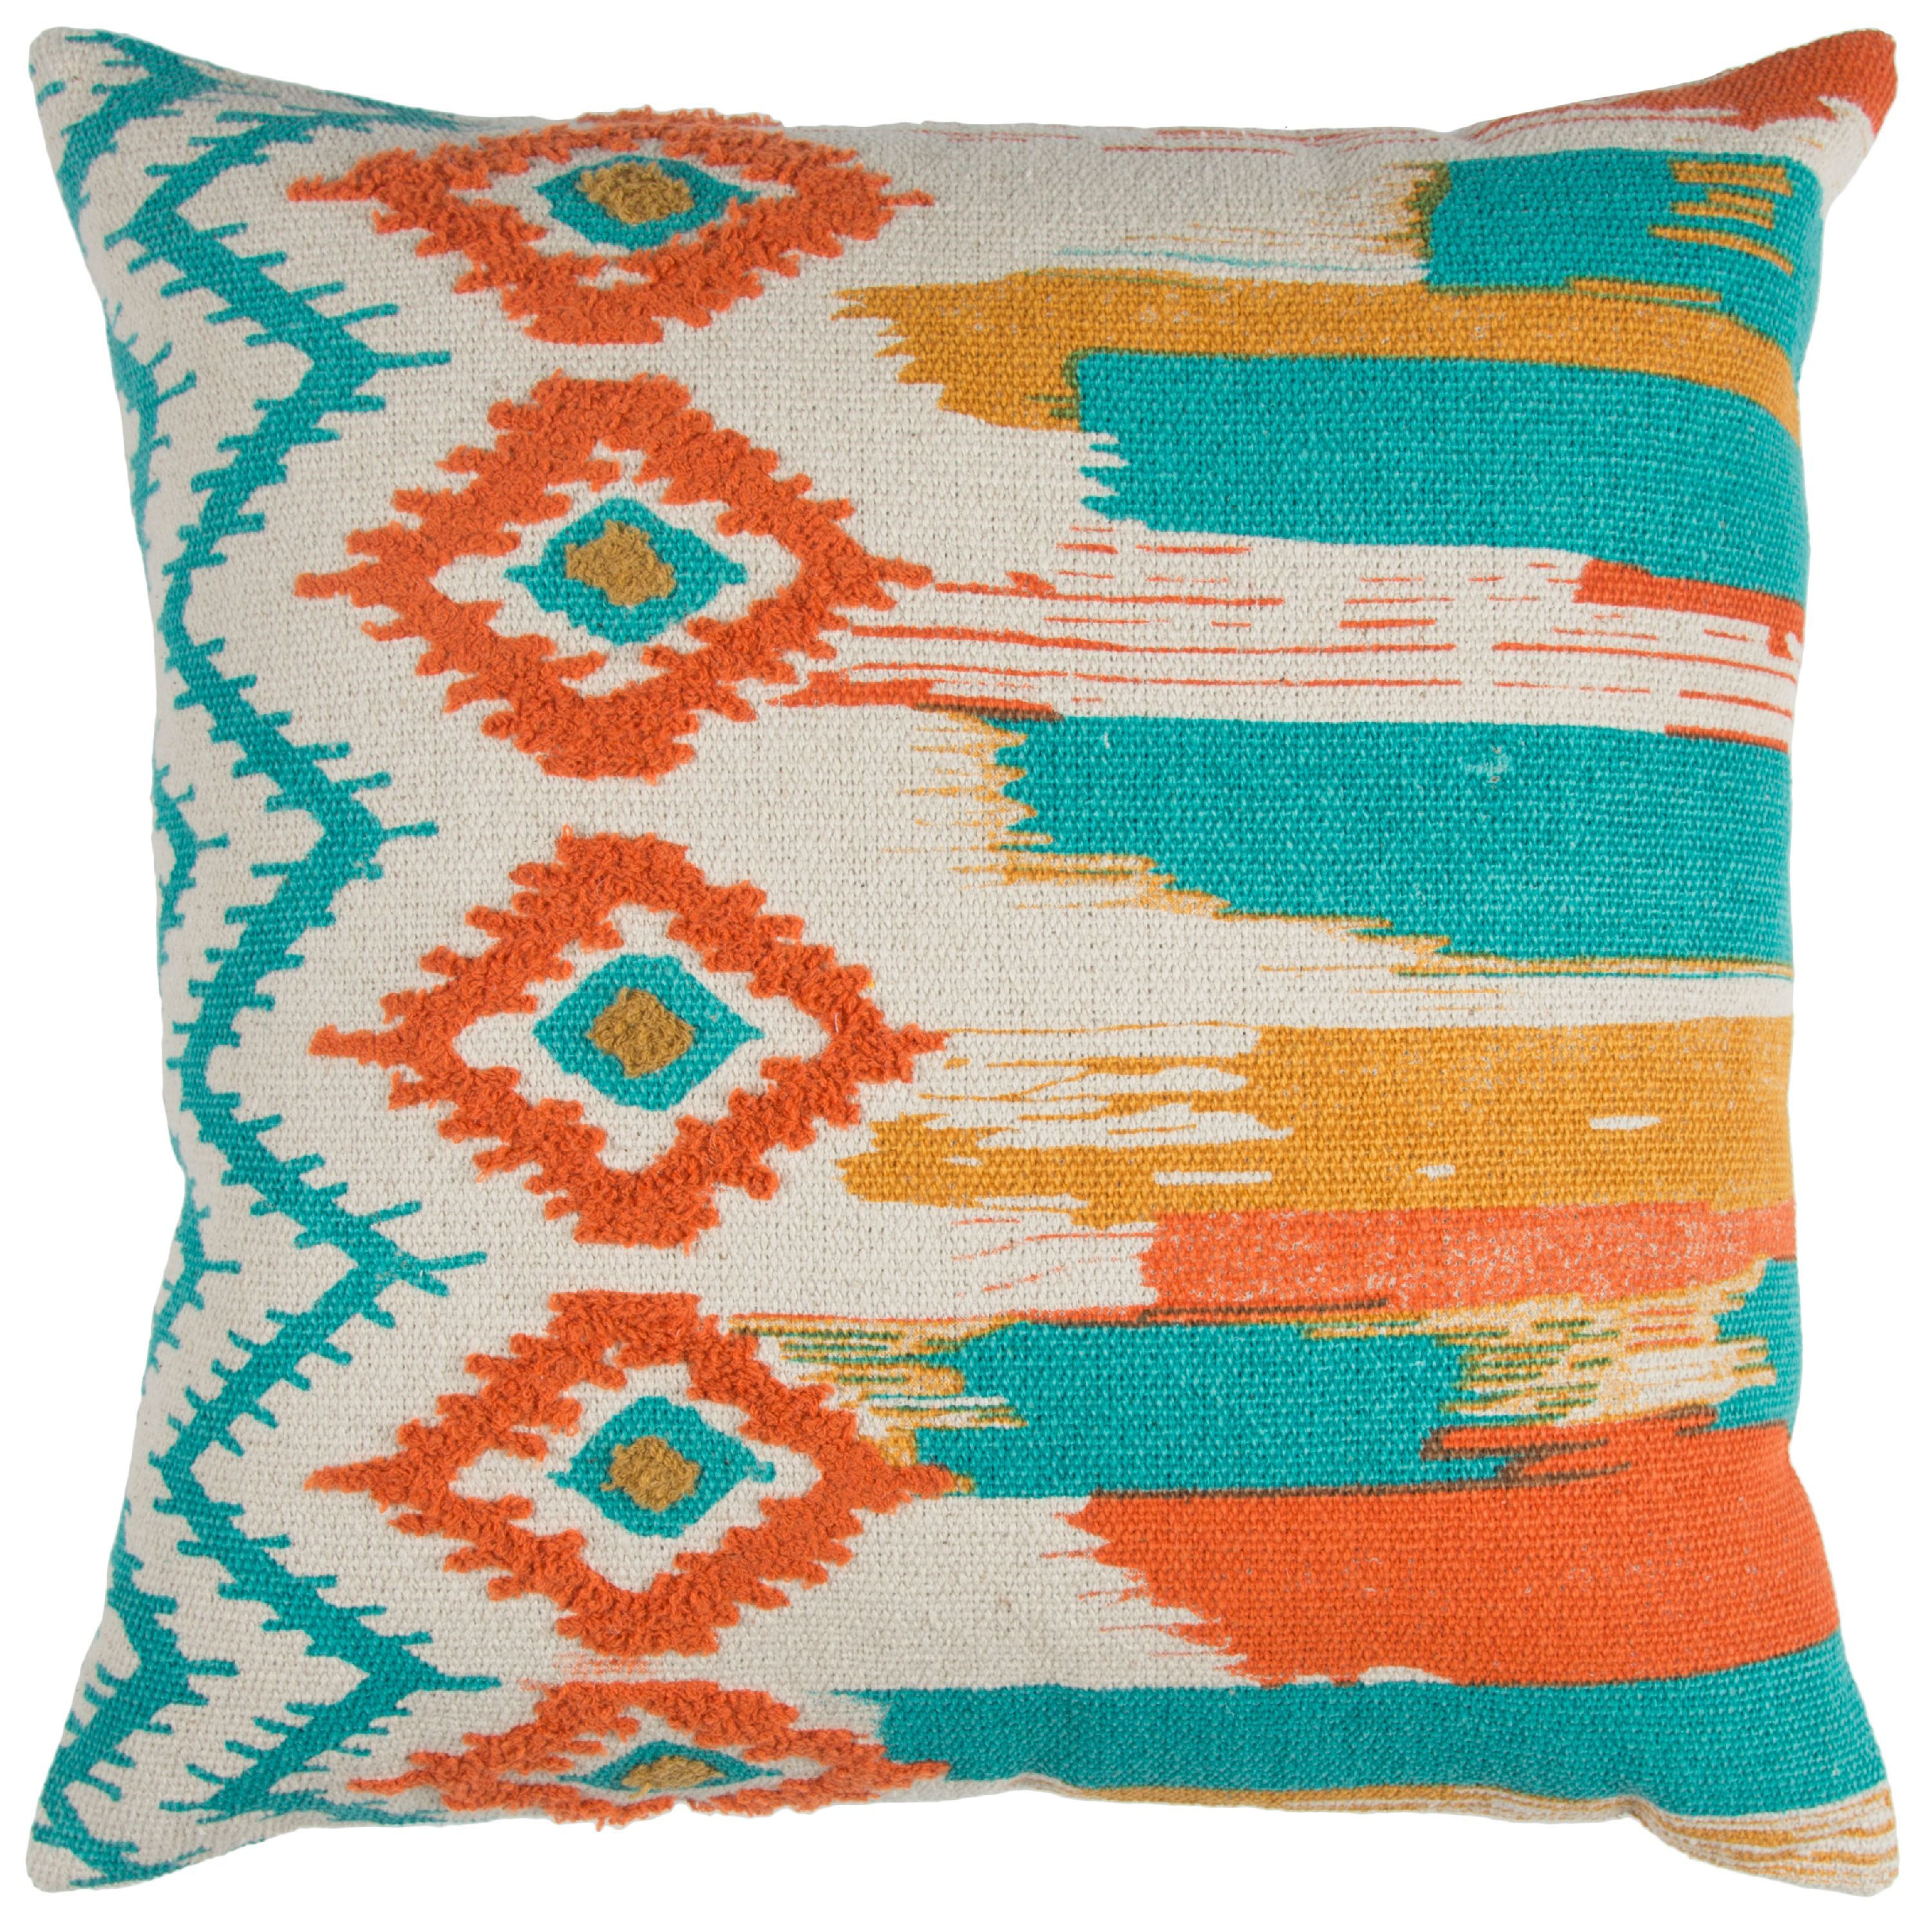 """Rizzy Home Natural Navy Boho Ikat Abstract Striped Cotton Decorative Throw Pillow, 20"""" x 20"""", Natural Teal"""